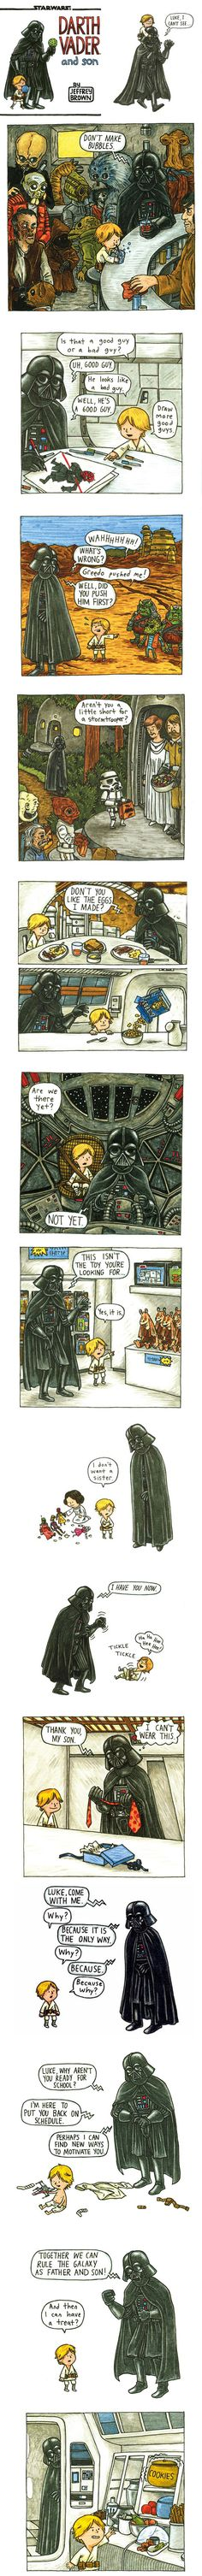 Darth Vader and son // funny pictures - funny photos - funny images - funny pics - funny quotes - #lol #humor #funnypictures